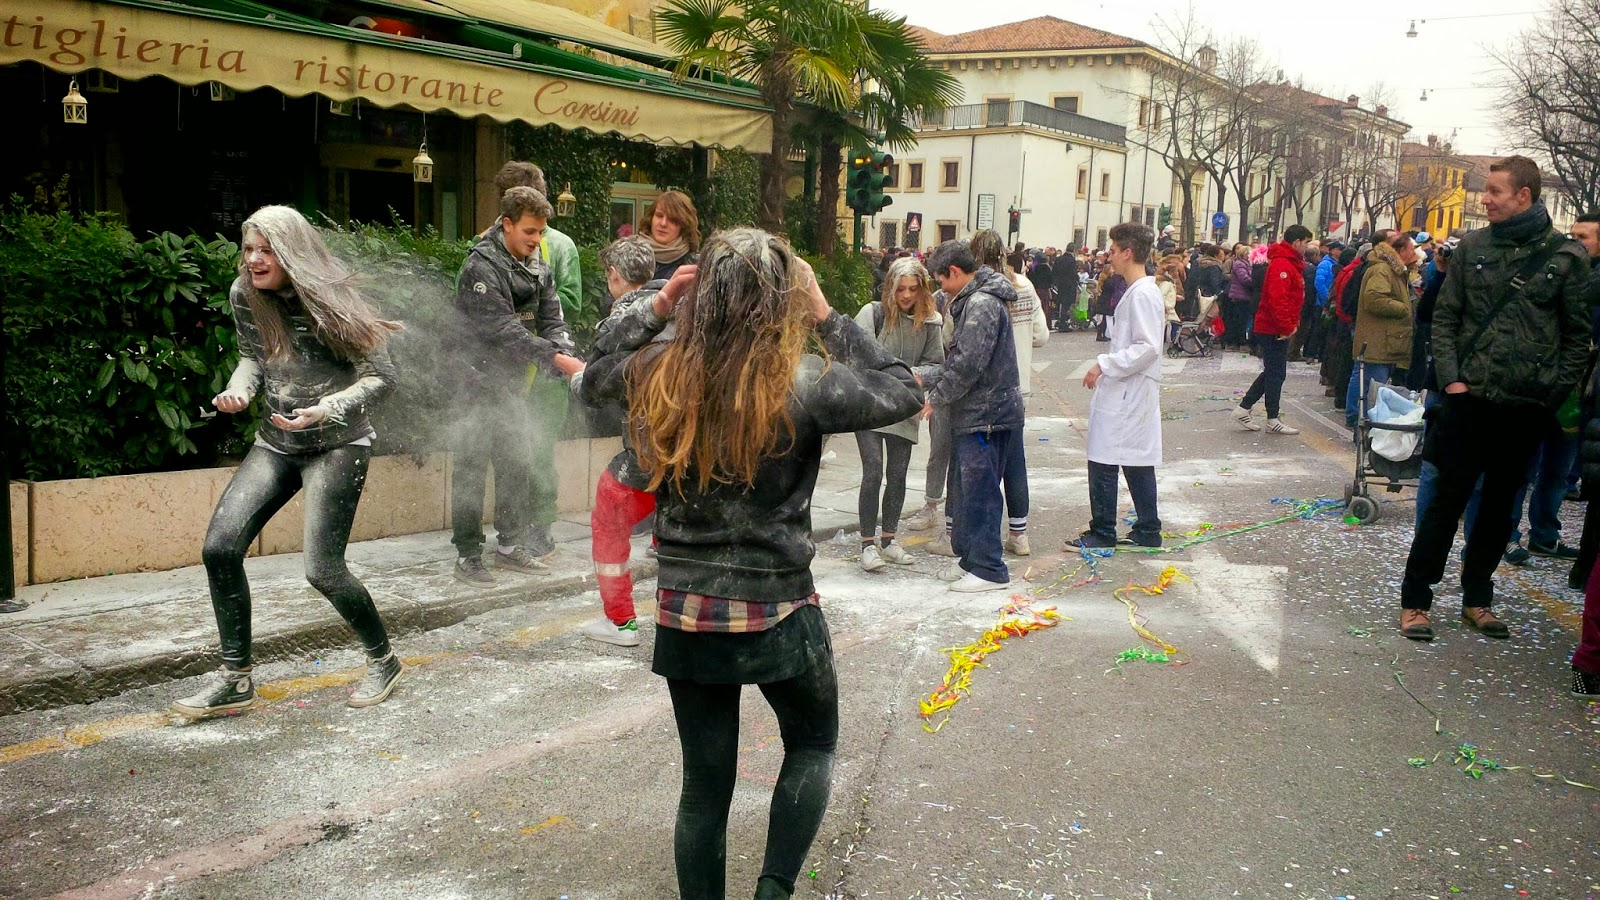 Teenagers throwing flour at each other during the parade for Verona Carnival